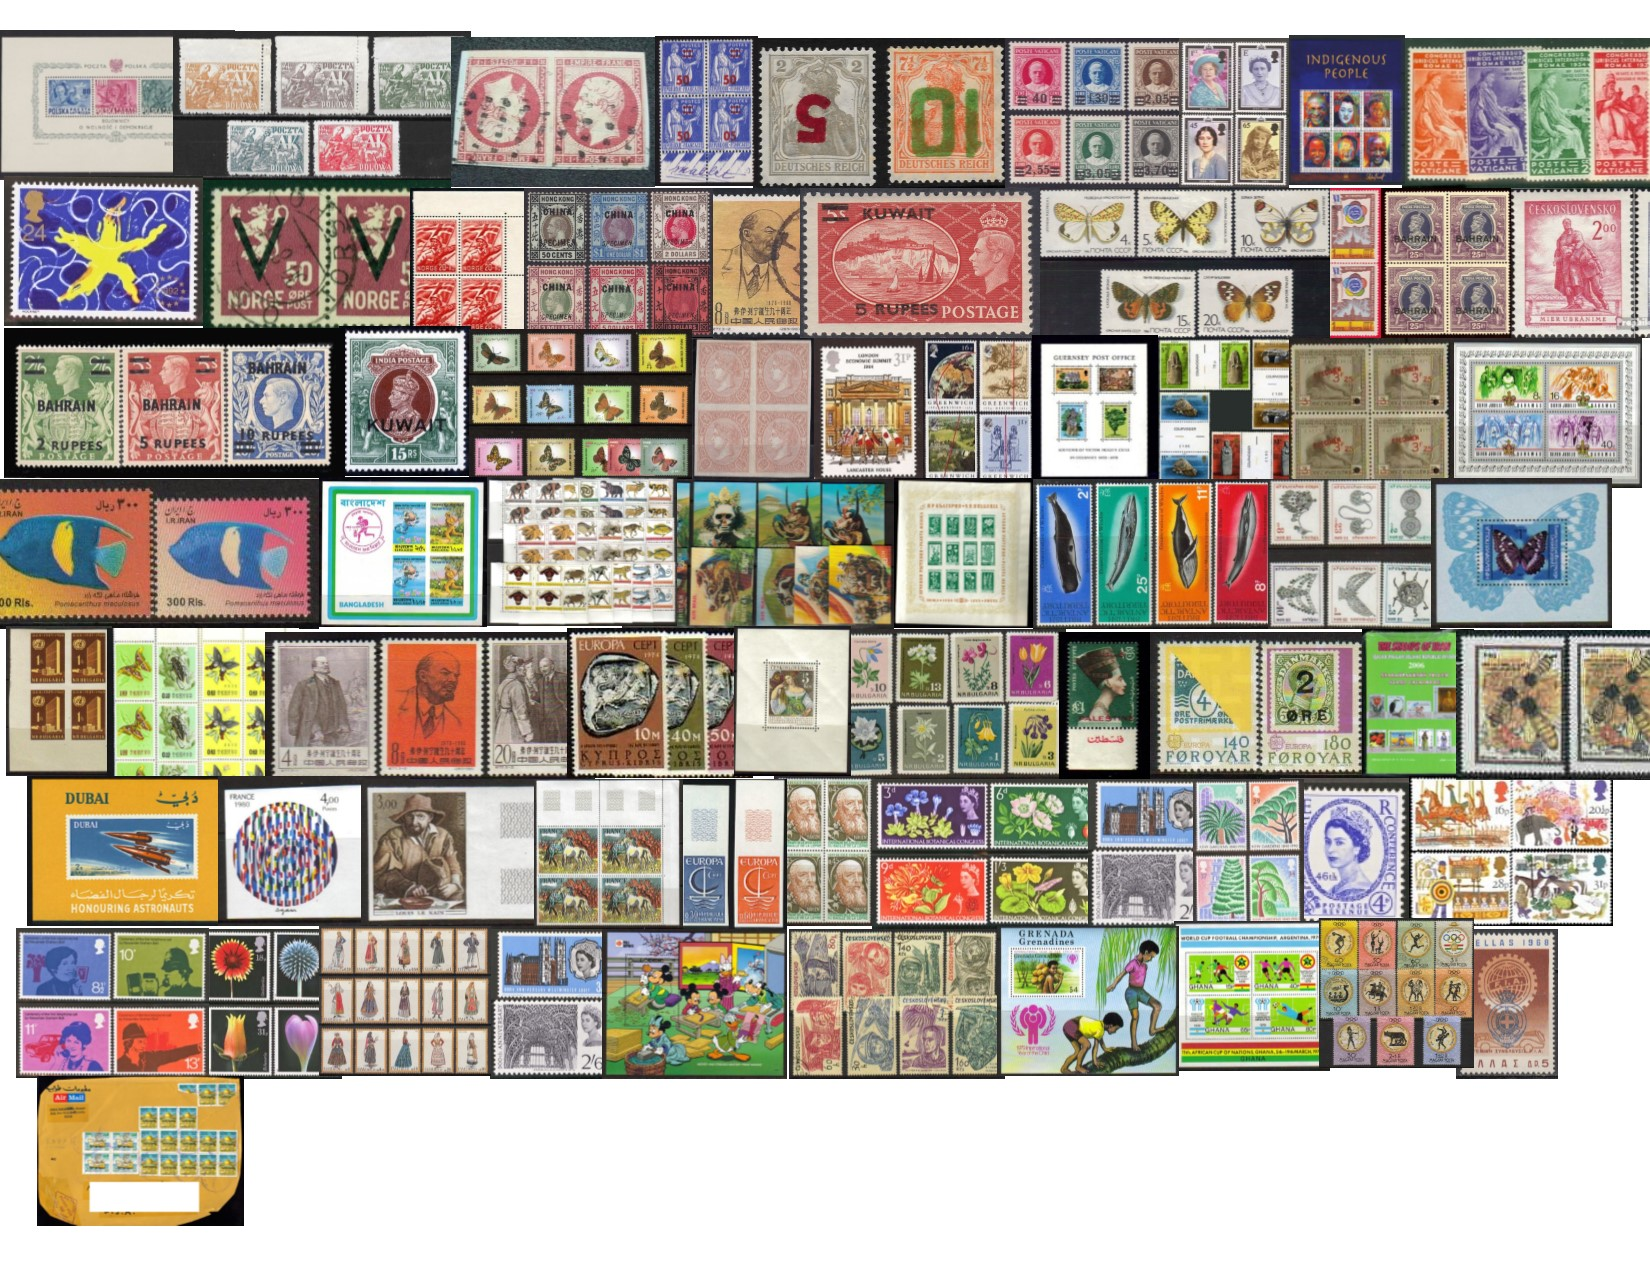 "<div class=""caption""><h1>All stamps are MNH, complete sets</h1><p><font size=+2>More items are being added</font></p></div>"